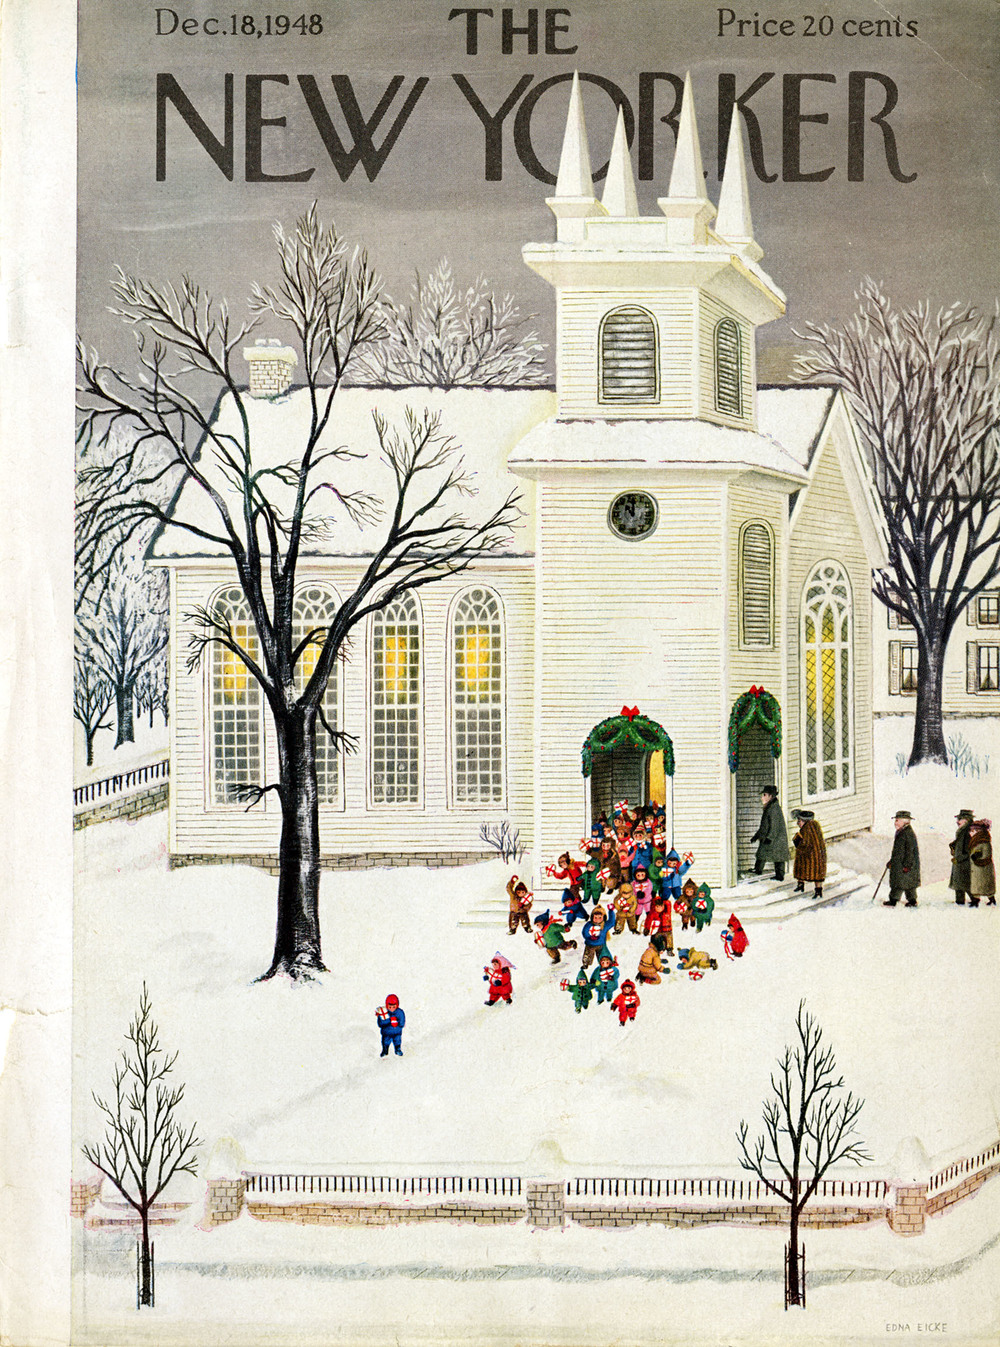 Edna Eicke, Cover Illustration for  The New Yorker . December 18, 1948.